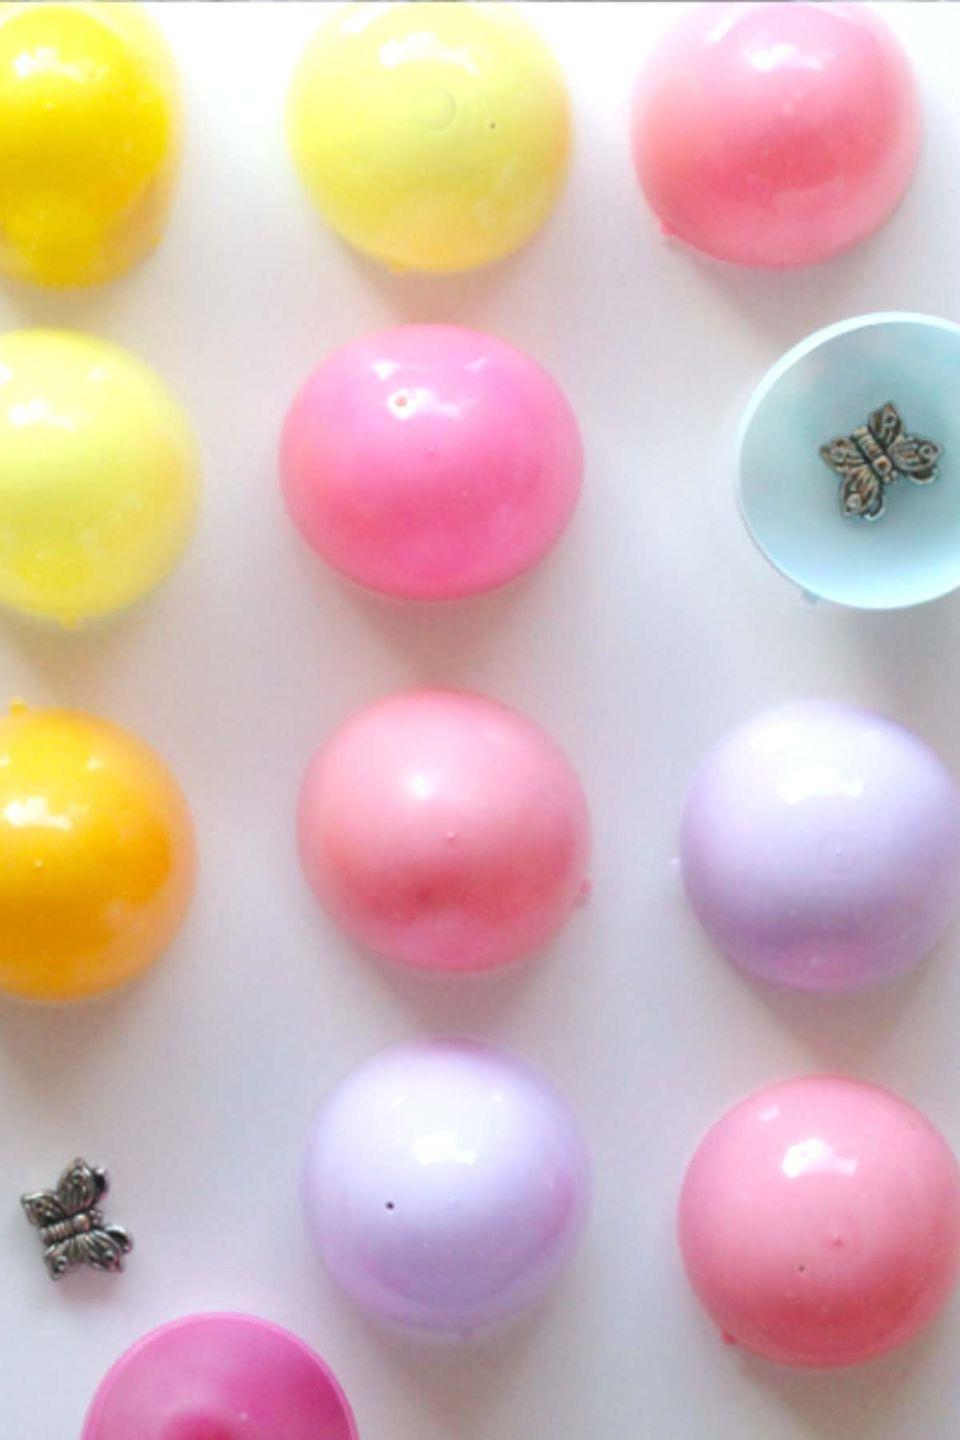 """<p>Hide tiny objects underneath your leftover plastic eggs in this fun memory game. </p><p><em>Get the tutorial at <a href=""""http://happilyevermom.com/easter-game-kids/"""" rel=""""nofollow noopener"""" target=""""_blank"""" data-ylk=""""slk:Happily Ever Mom"""" class=""""link rapid-noclick-resp"""">Happily Ever Mom</a>.</em></p>"""